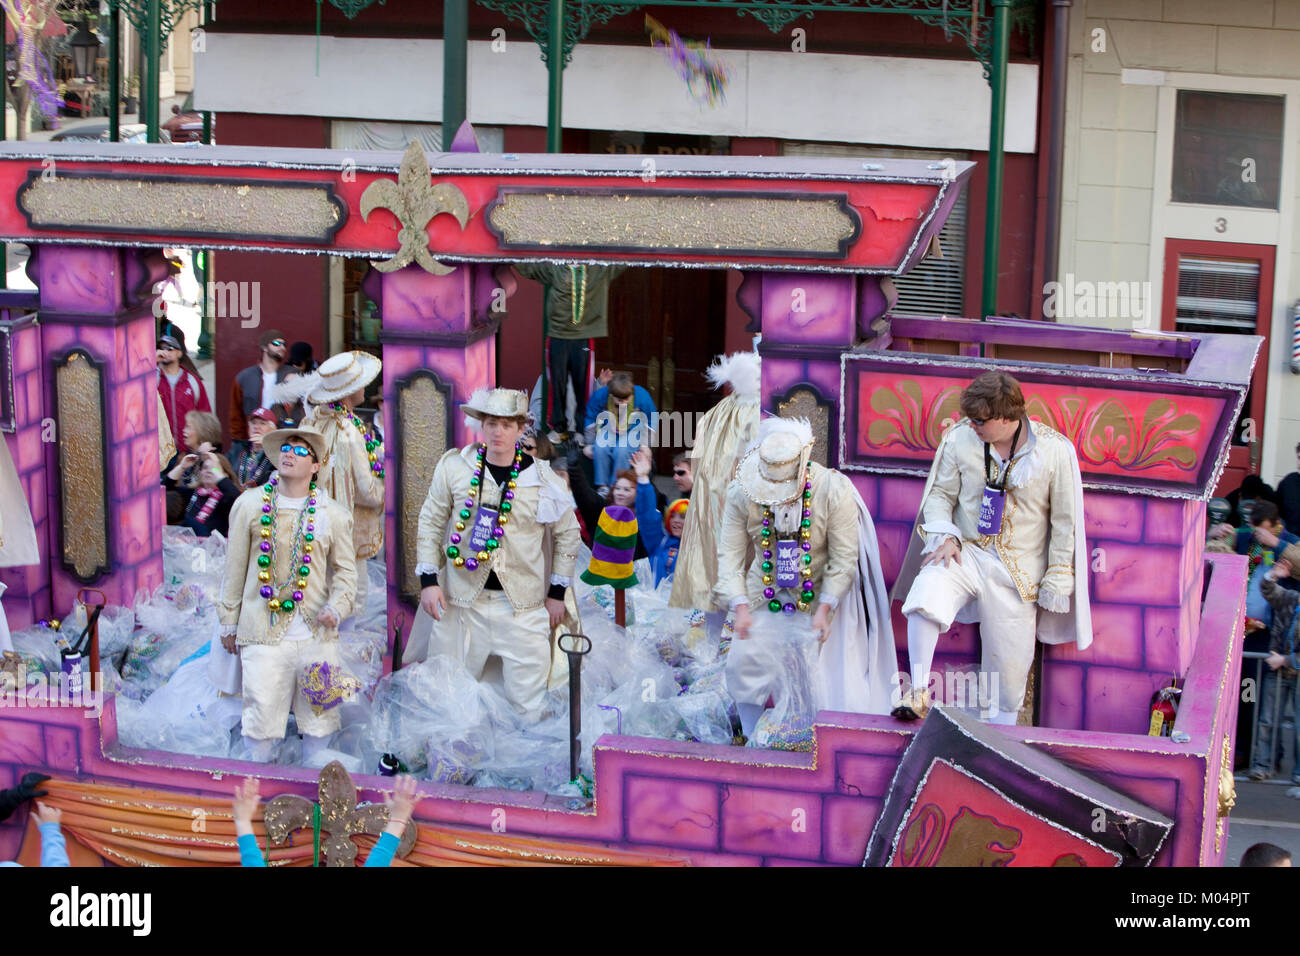 Mardi Gras Float - Stock Image